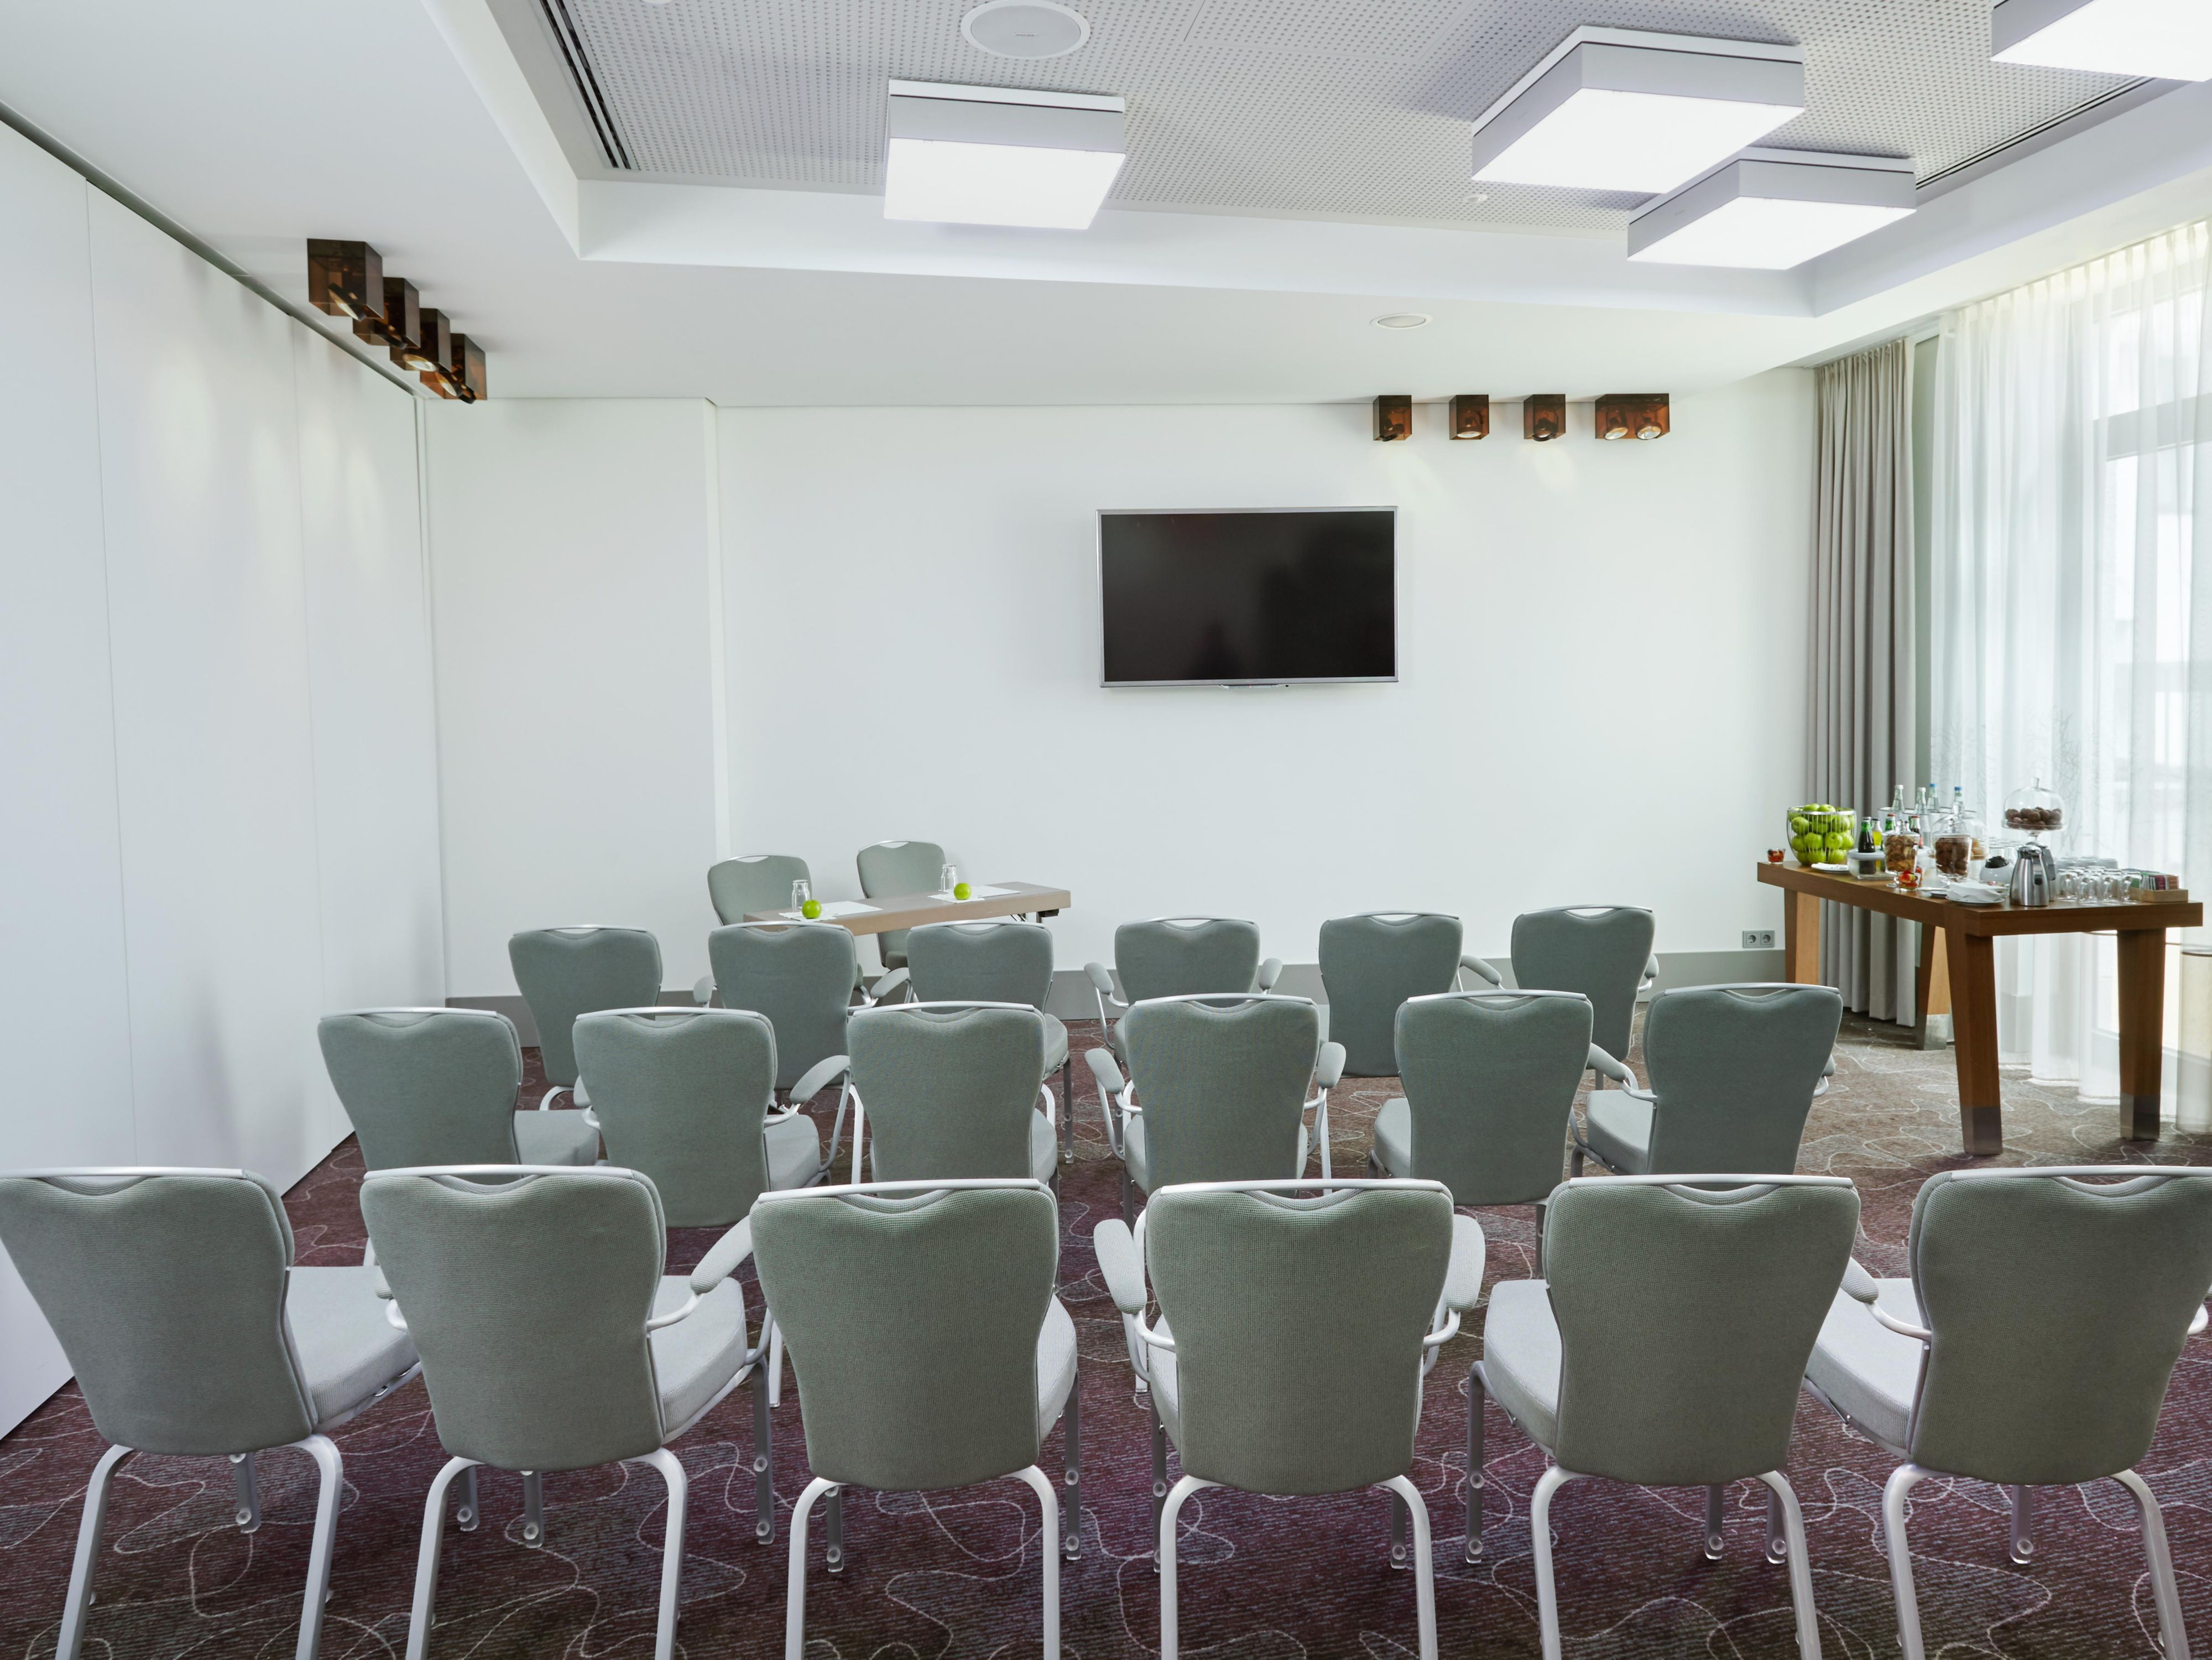 Book our Kollwitz Theatre Meeting Room for your conference